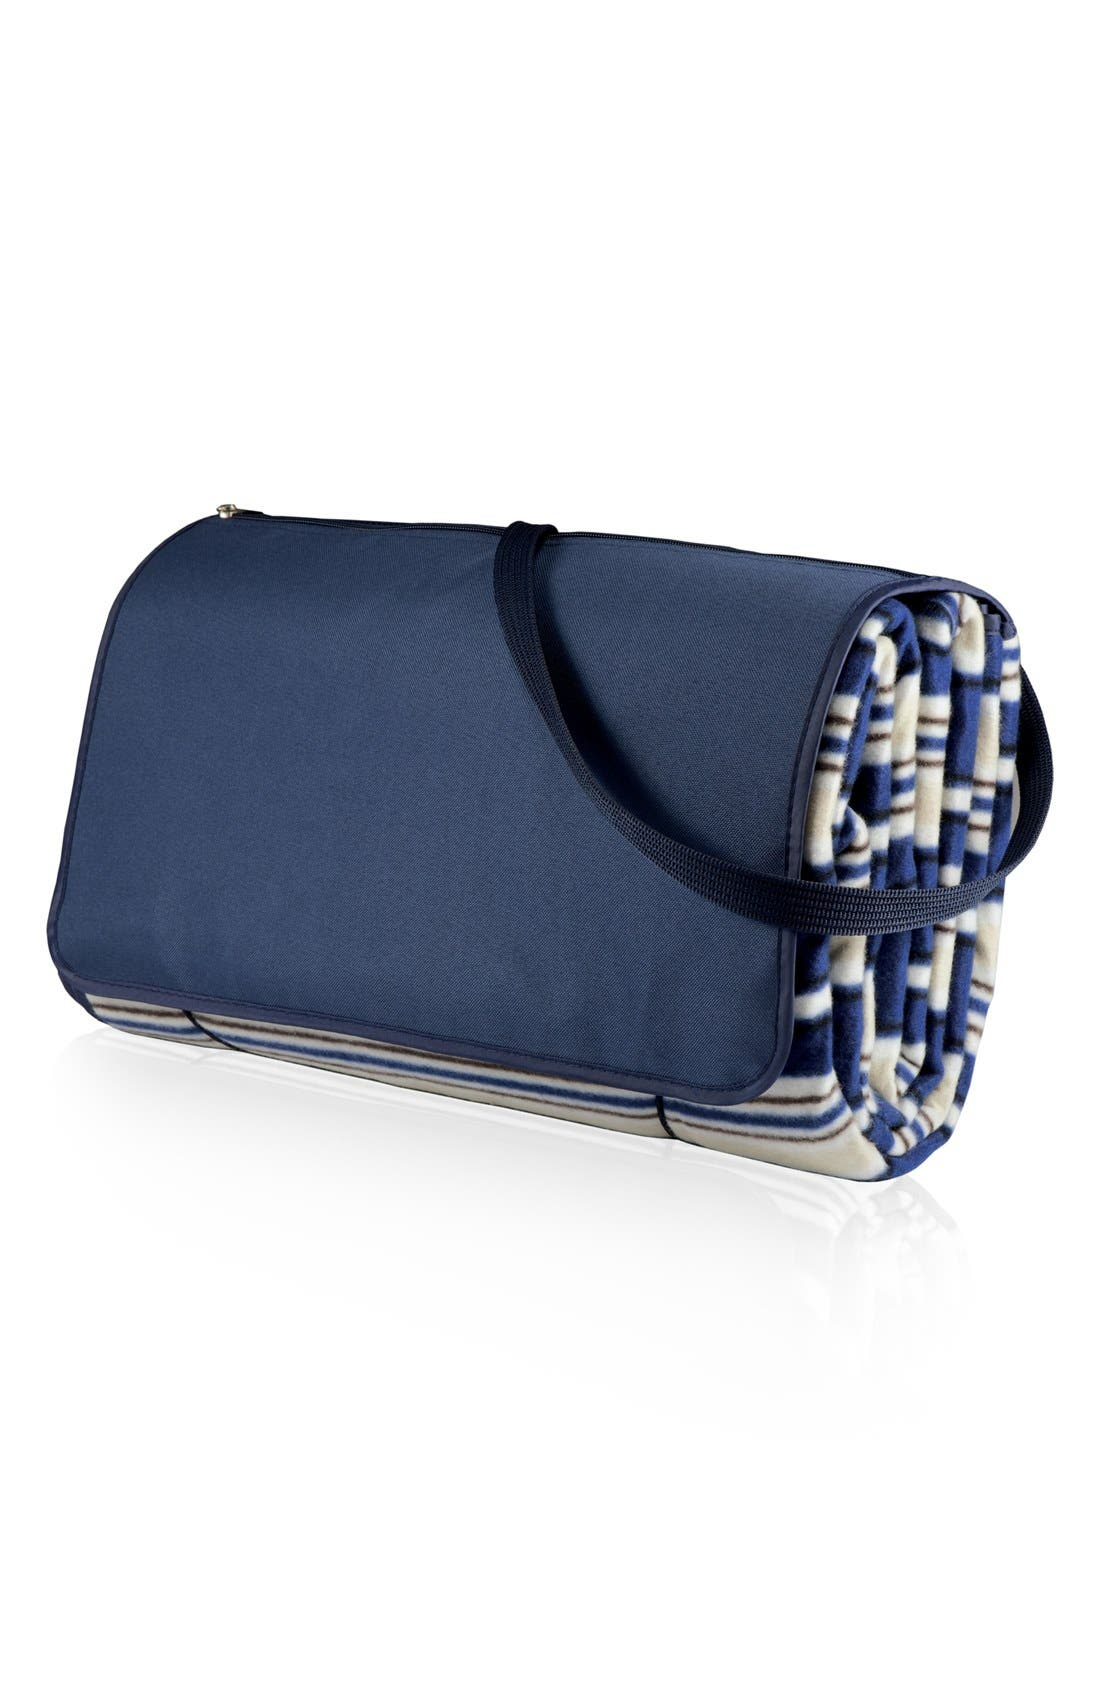 'XL' Blanket Tote,                             Alternate thumbnail 2, color,                             BLUE